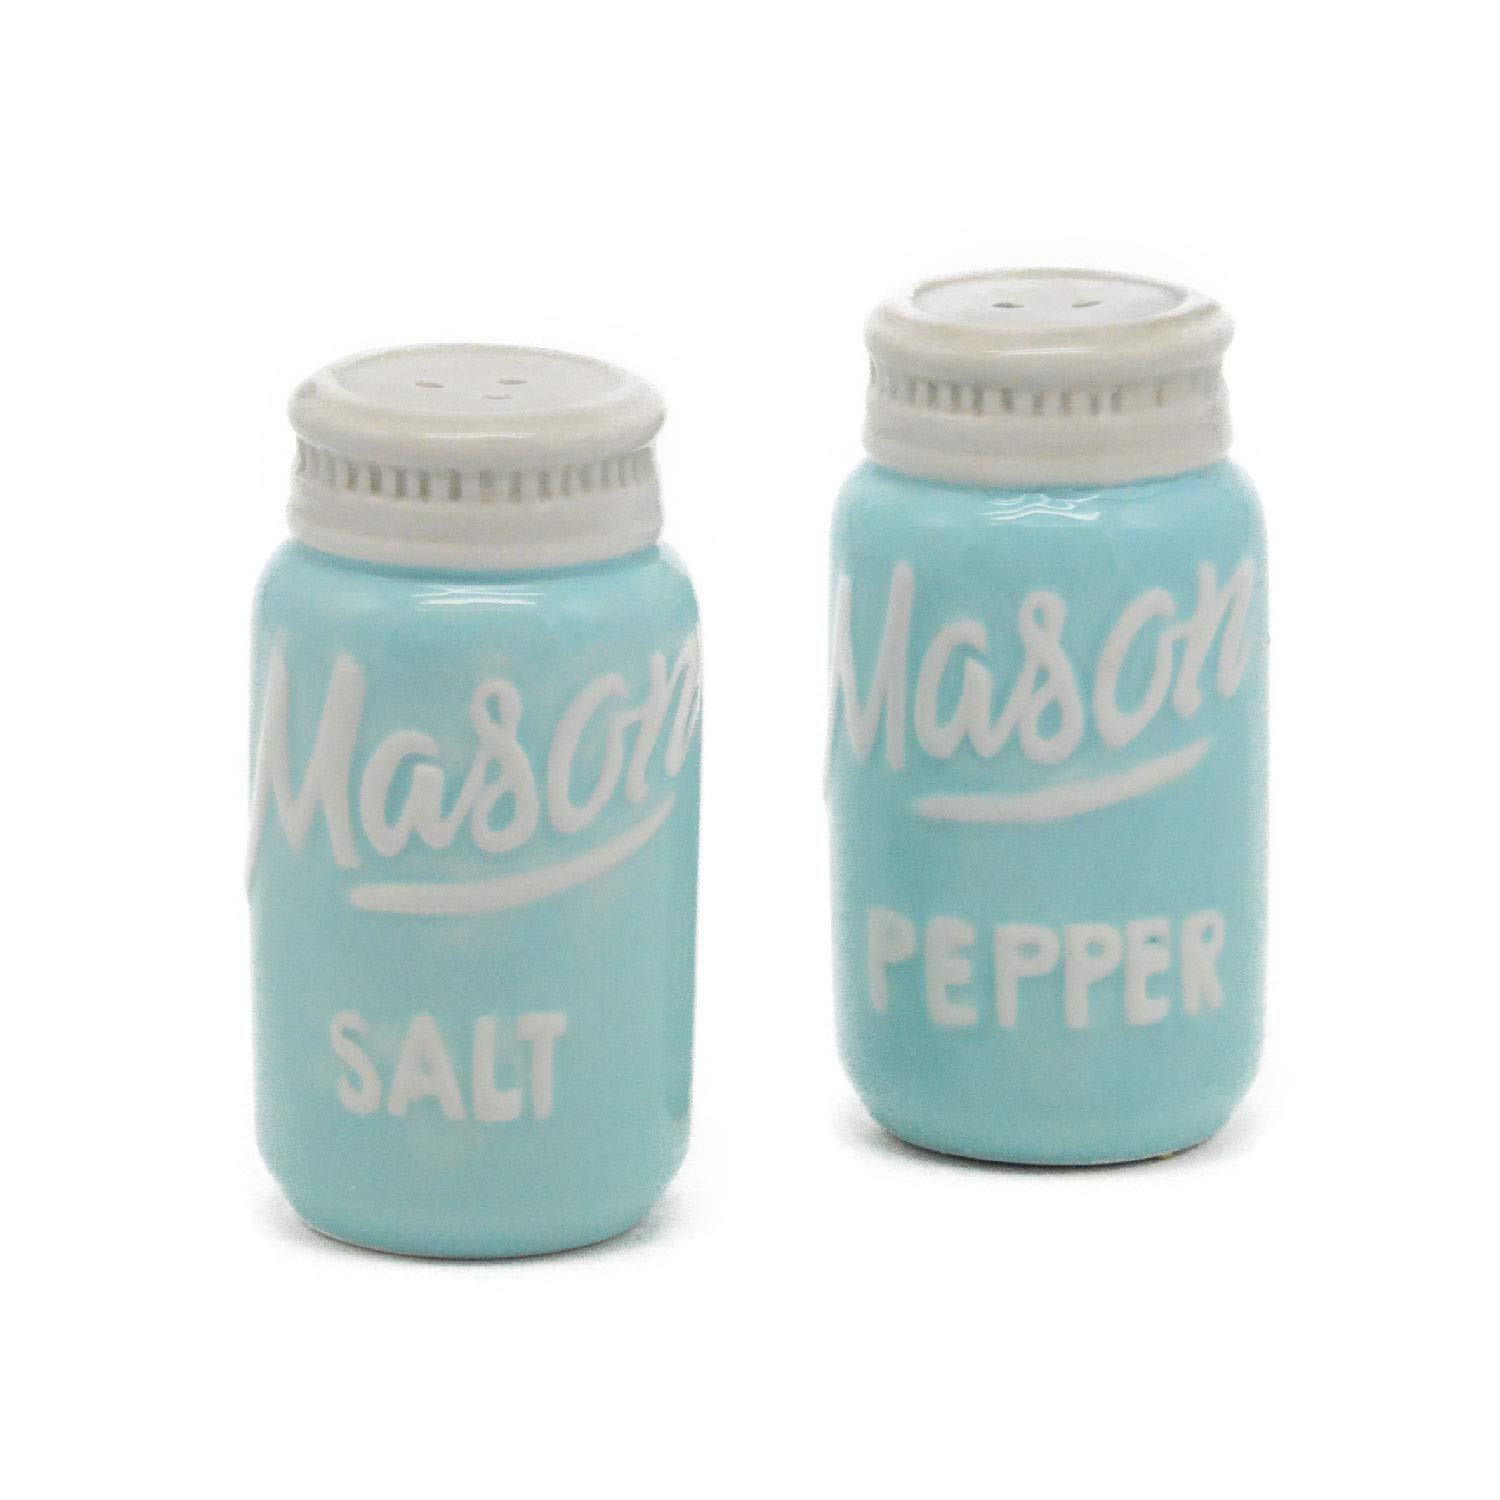 Blue Mason Jar Salt & Pepper Shakers - Kitchen Ceramic Shakers   Retro & Farmhouse Decor   Dishwasher & Microwave Safe   Set of 2   Baking Supplies  Rustic Home Accessory & Gifts by Goodscious